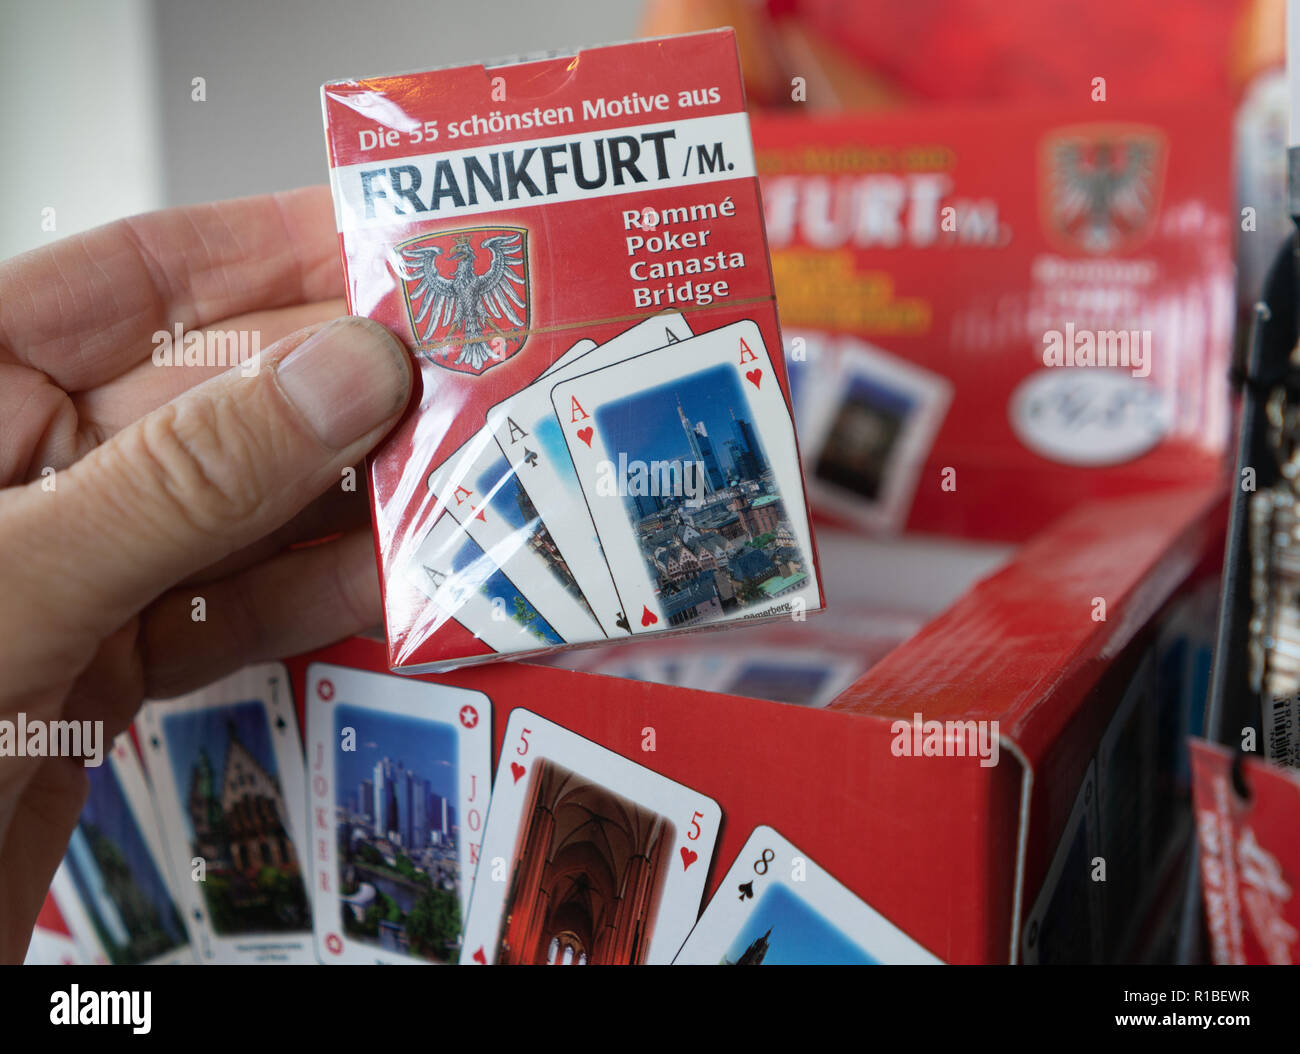 09 November 2018, Hessen, Frankfurt/Main: Card games with Frankfurt motifs can be bought in a shop on Römerberg. (to dpa 'Cuddling with Frankfurt, drinking watering: City merchandising booms' from 11.11.2018) Photo: Frank Rumpenhorst/dpa - Stock Image